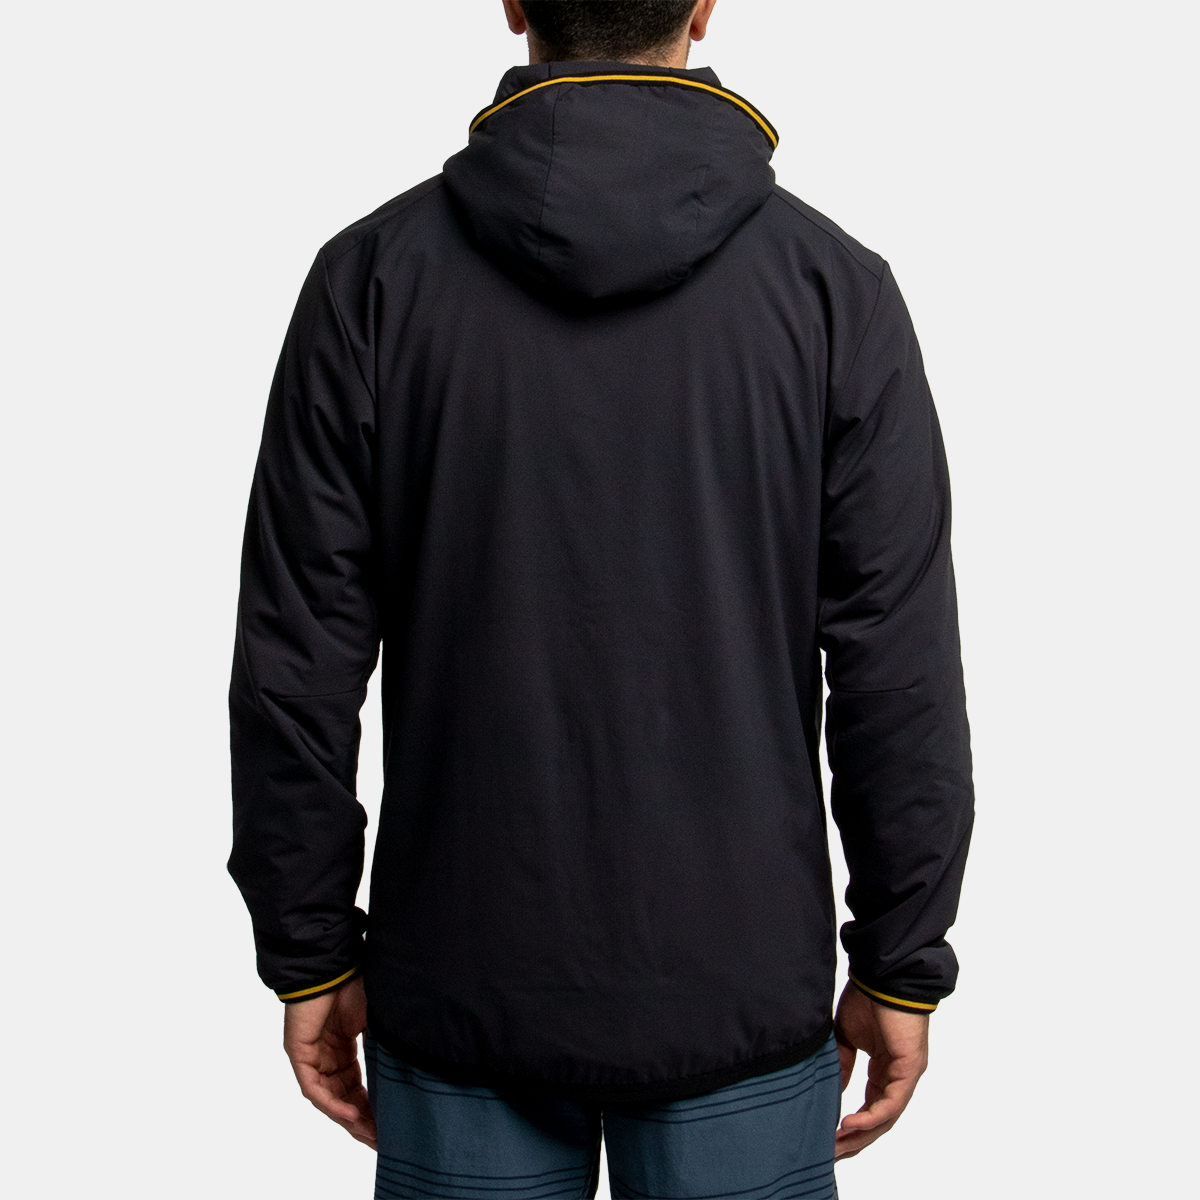 Morning Skate Jacket - Black